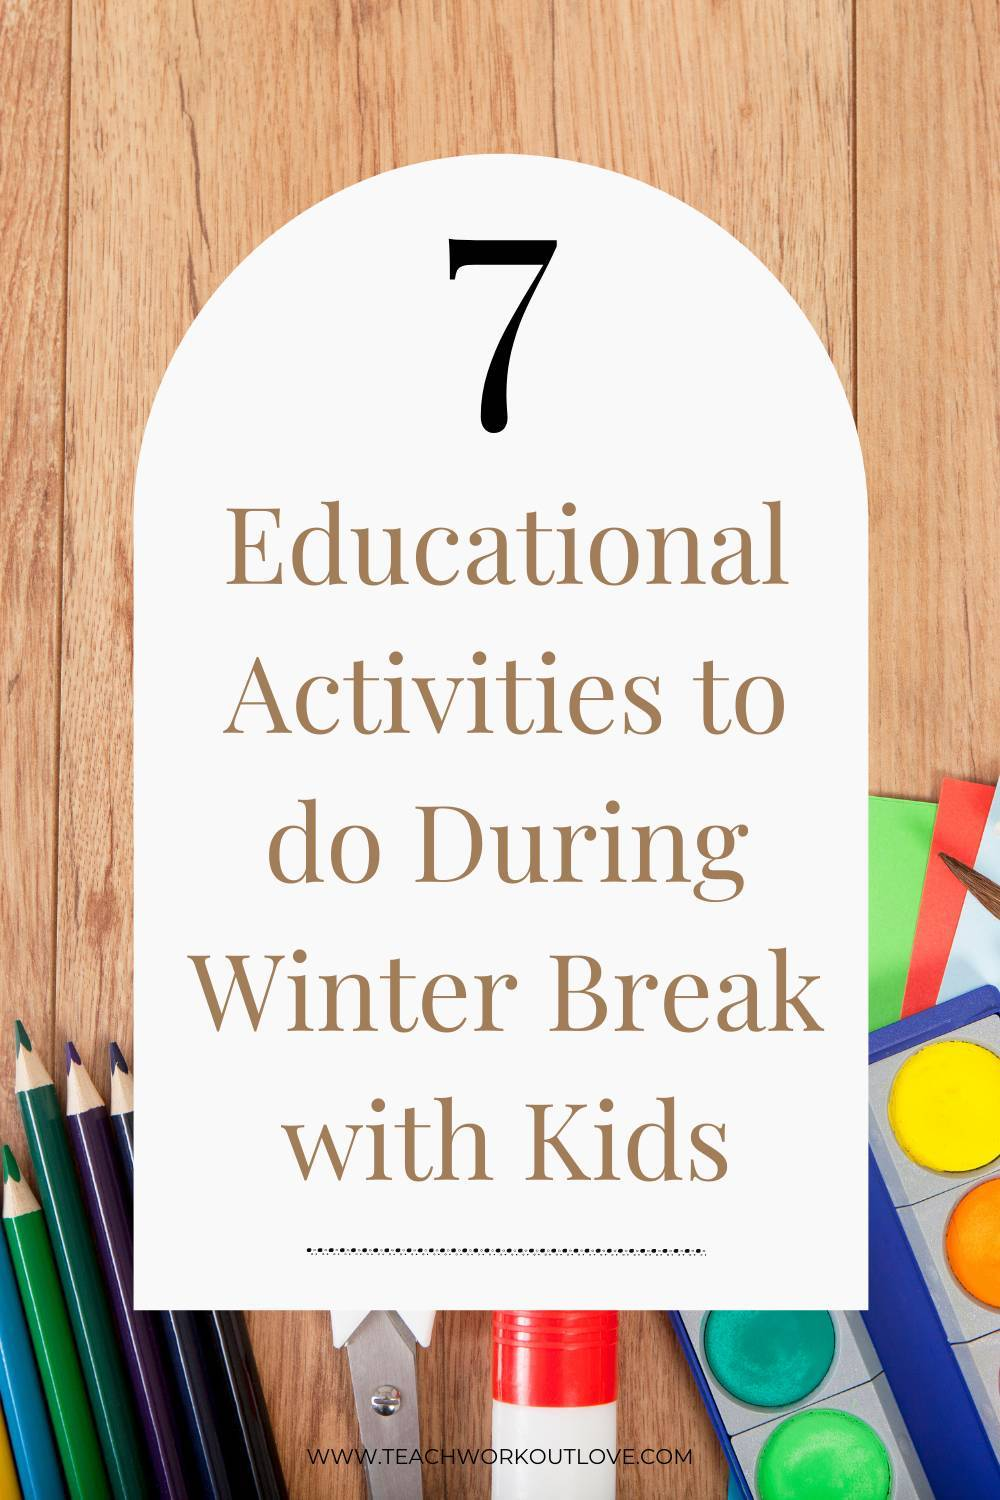 Here are some excellent ideas to keep kids' minds sharp and ready to go back to school after the winter break.